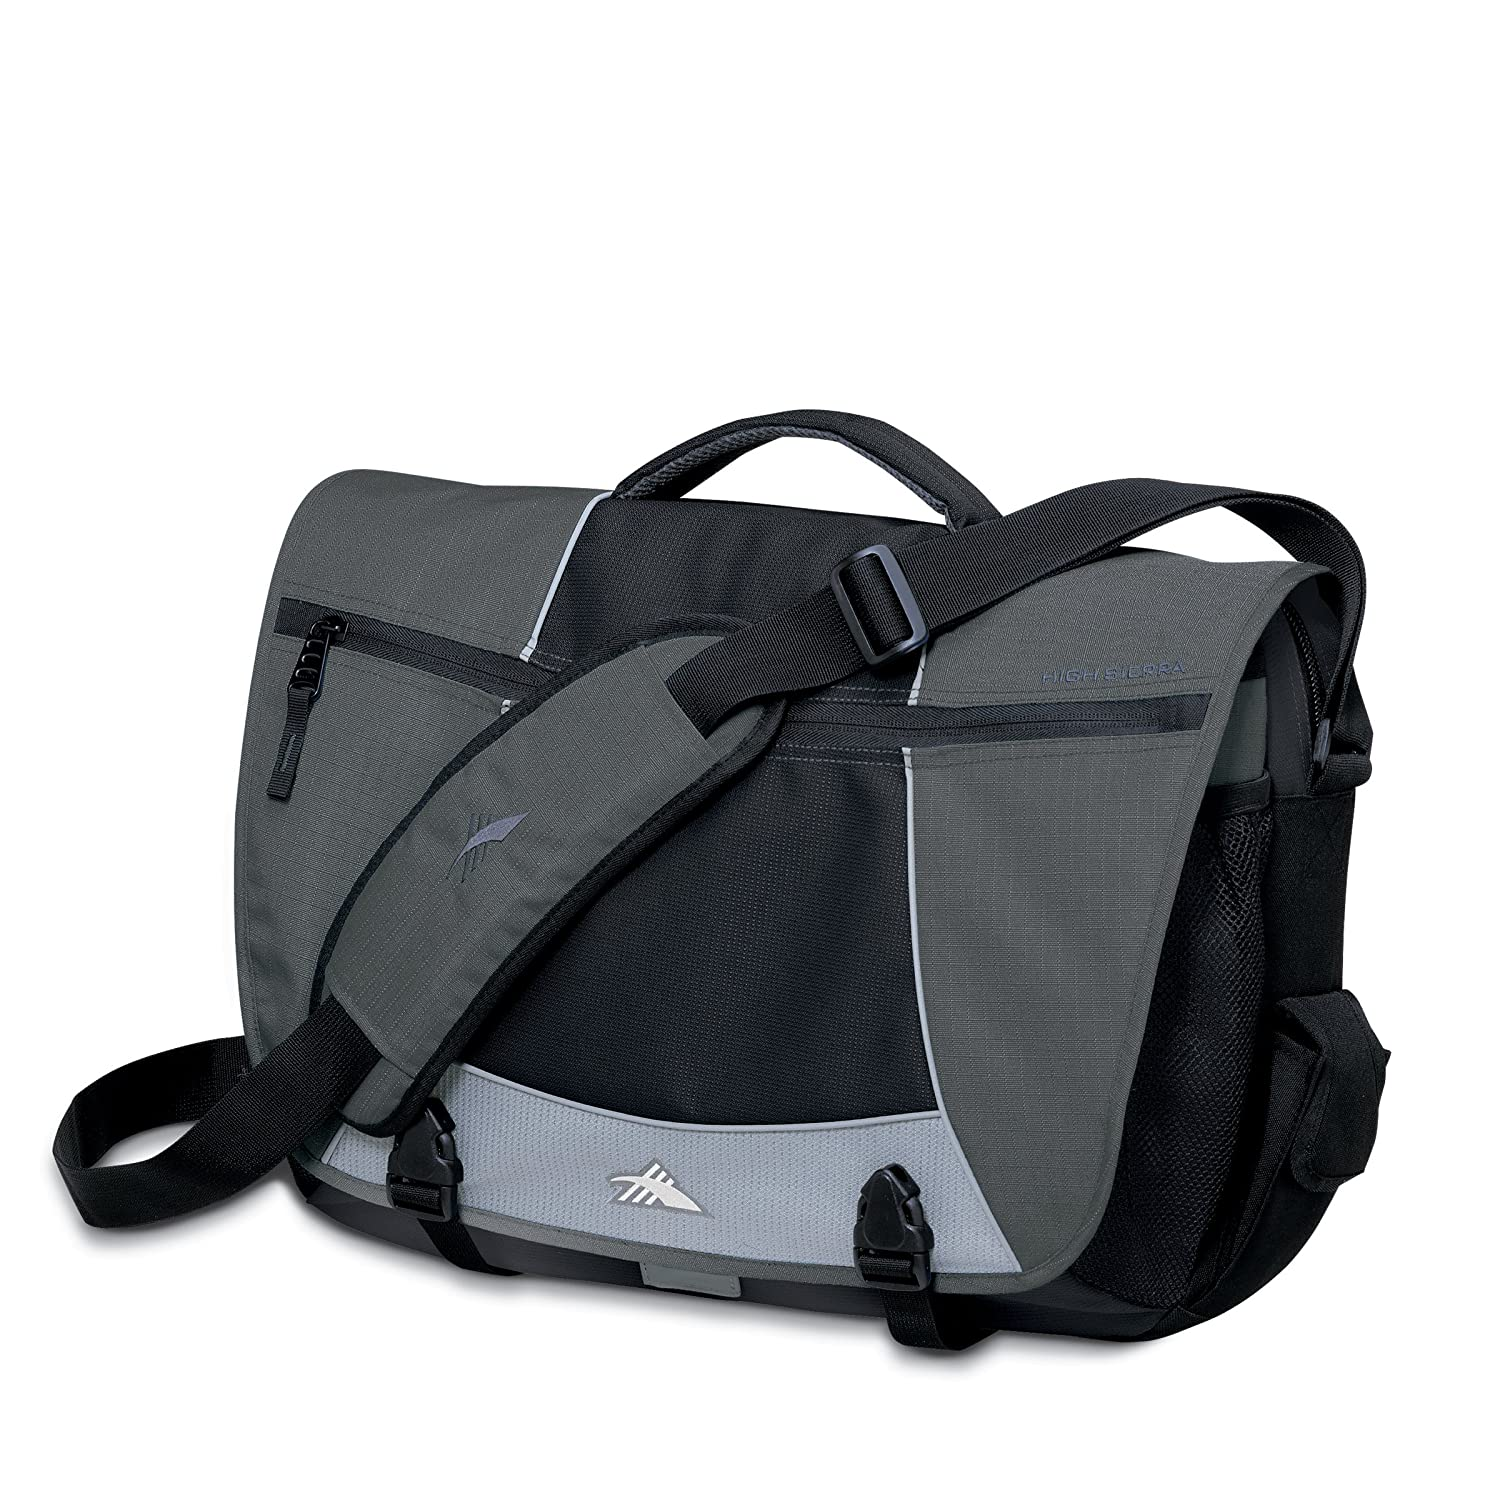 High Sierra Tank Pack (Charcoal/Black/Silver/Black) $20